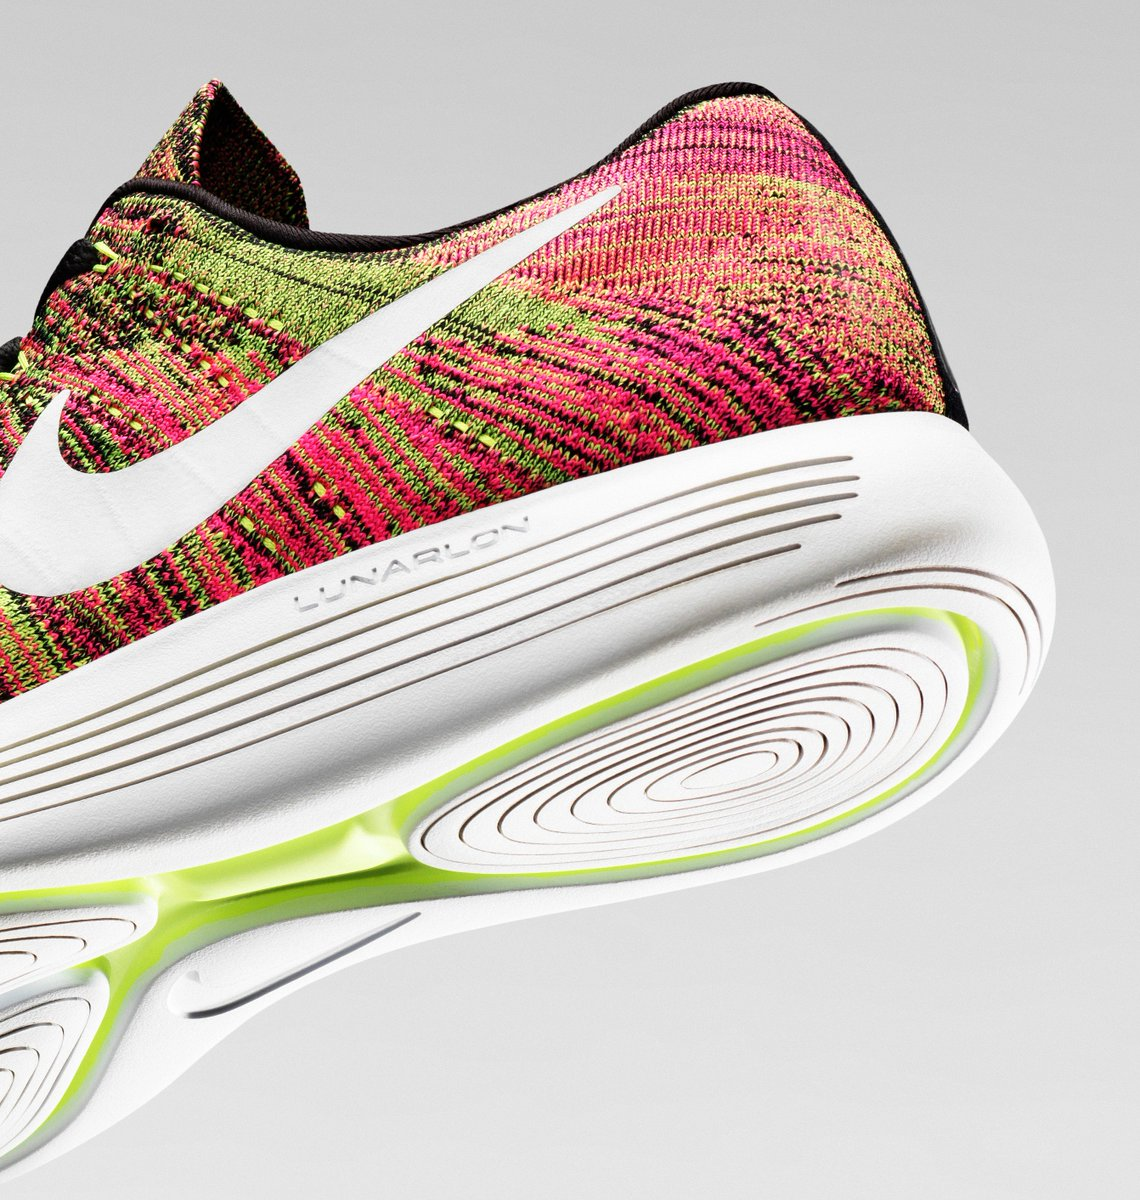 db7b92e5d9367 effortless ride limitless style the nike lunarepic low flyknit in the  unlimited colourway lands 04 08